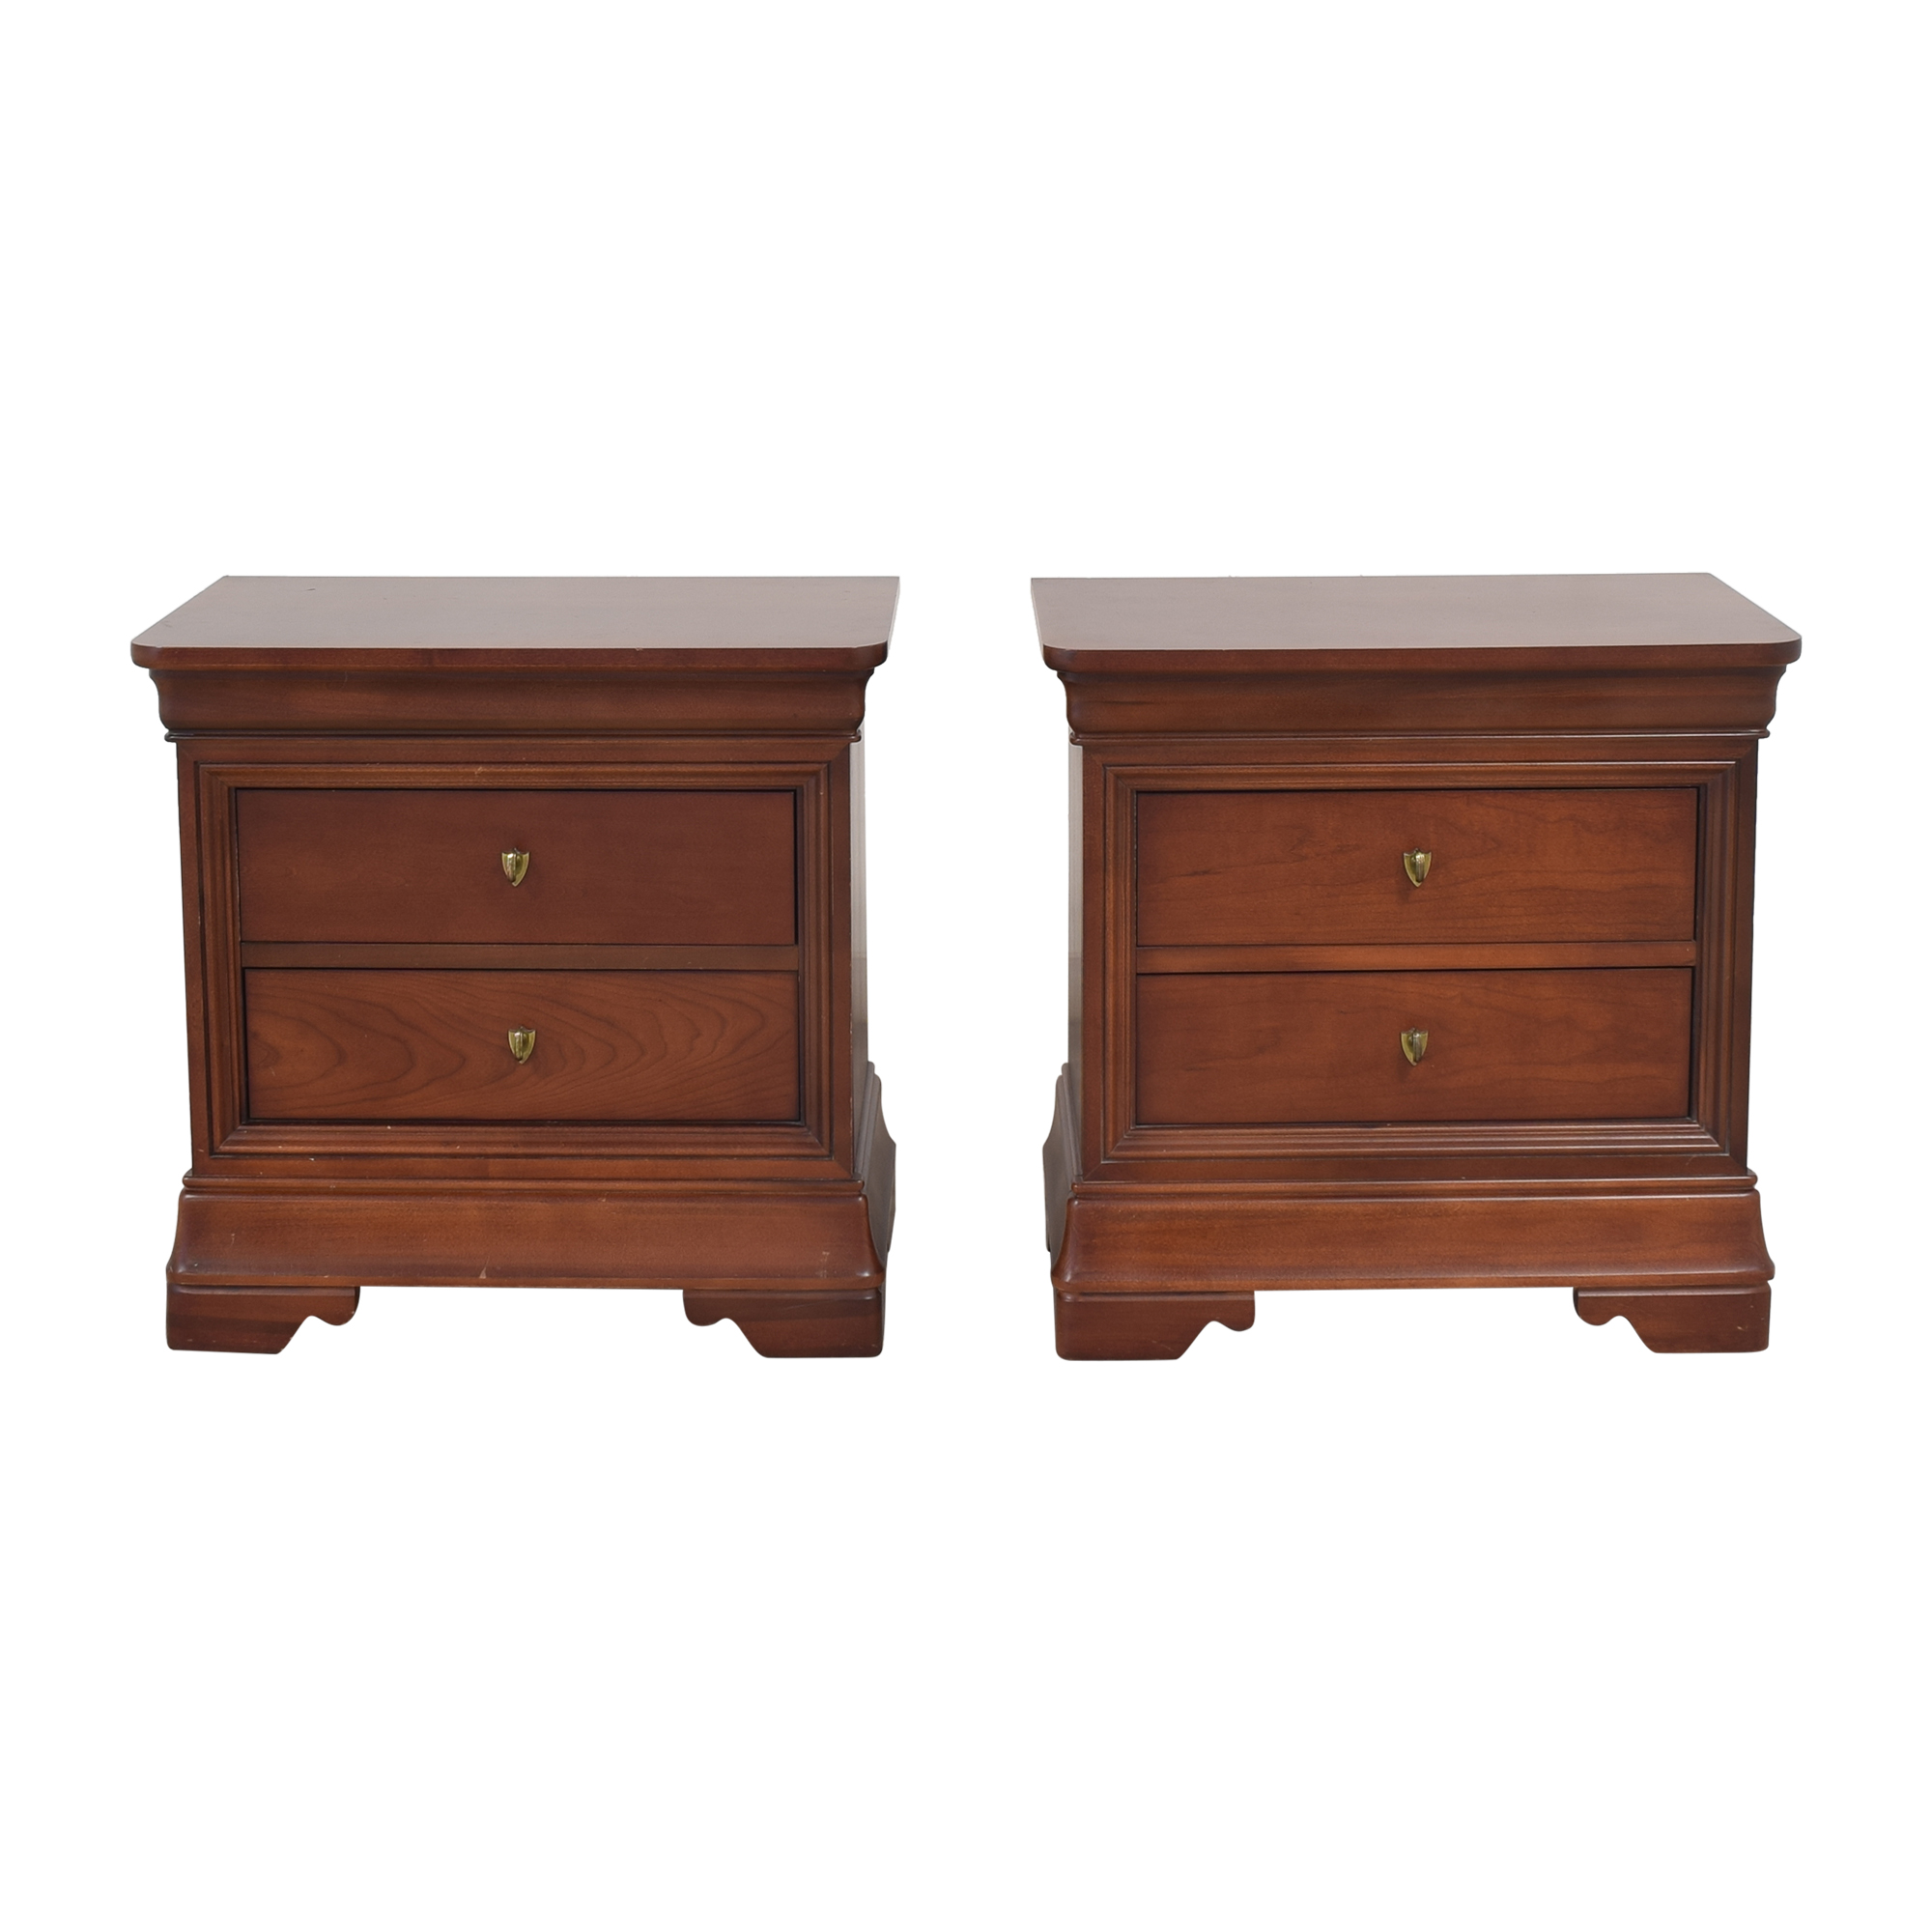 Thomasville Thomasville Impressions Two Drawer Nightstands for sale